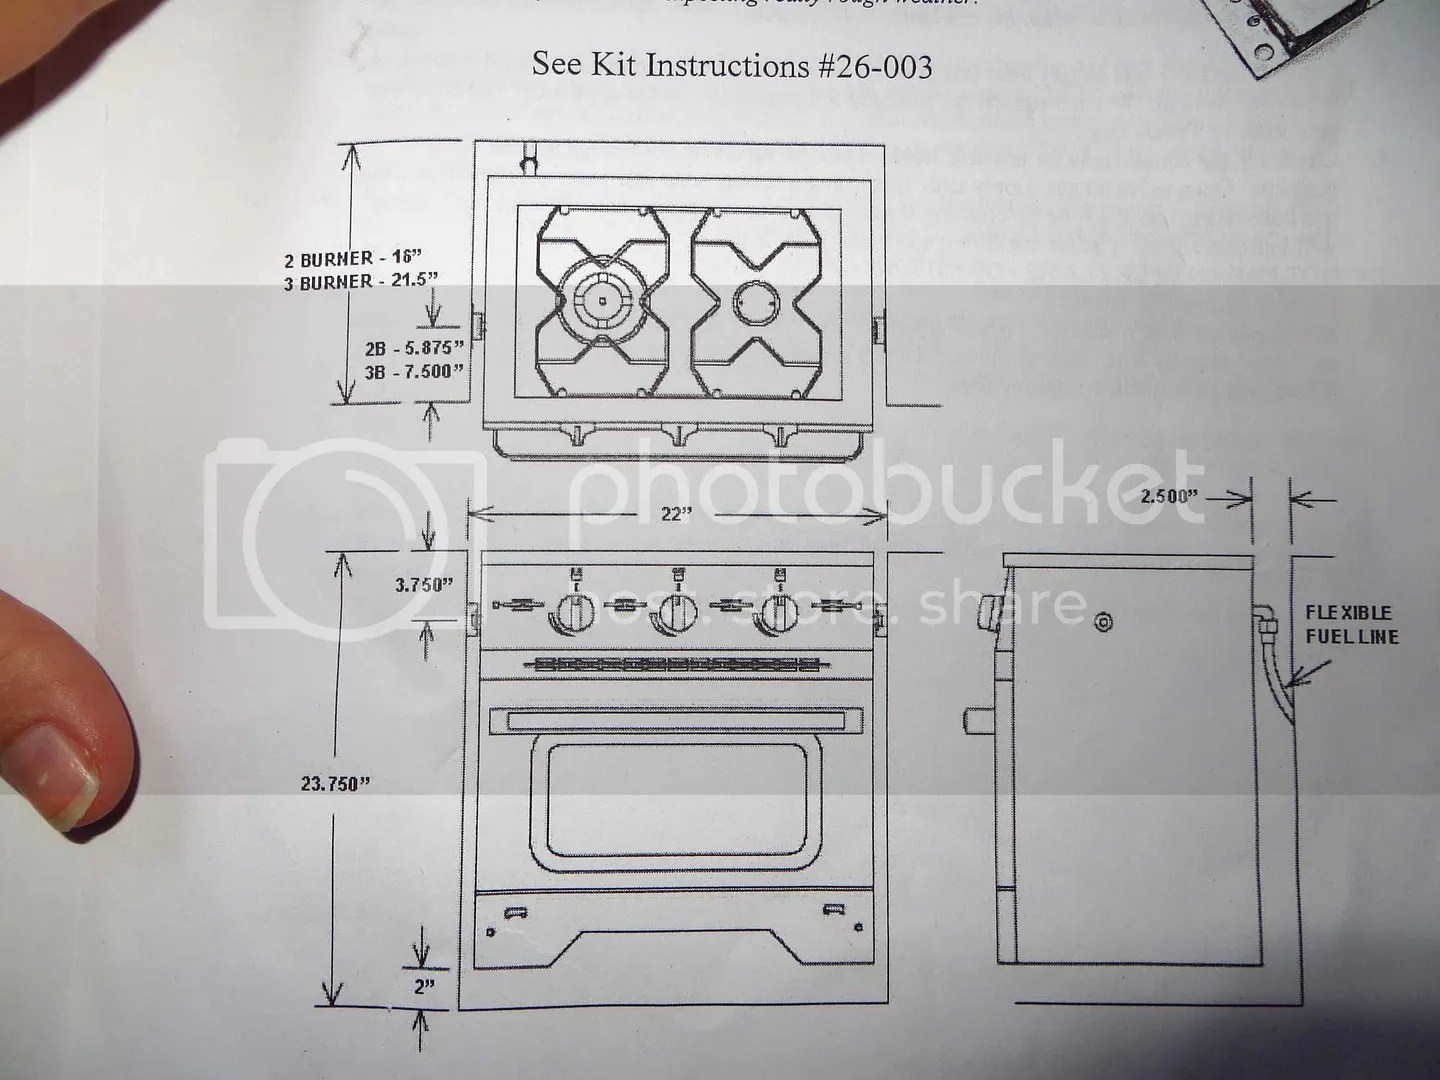 Instructions to mount the Dickinson Caribbean stove